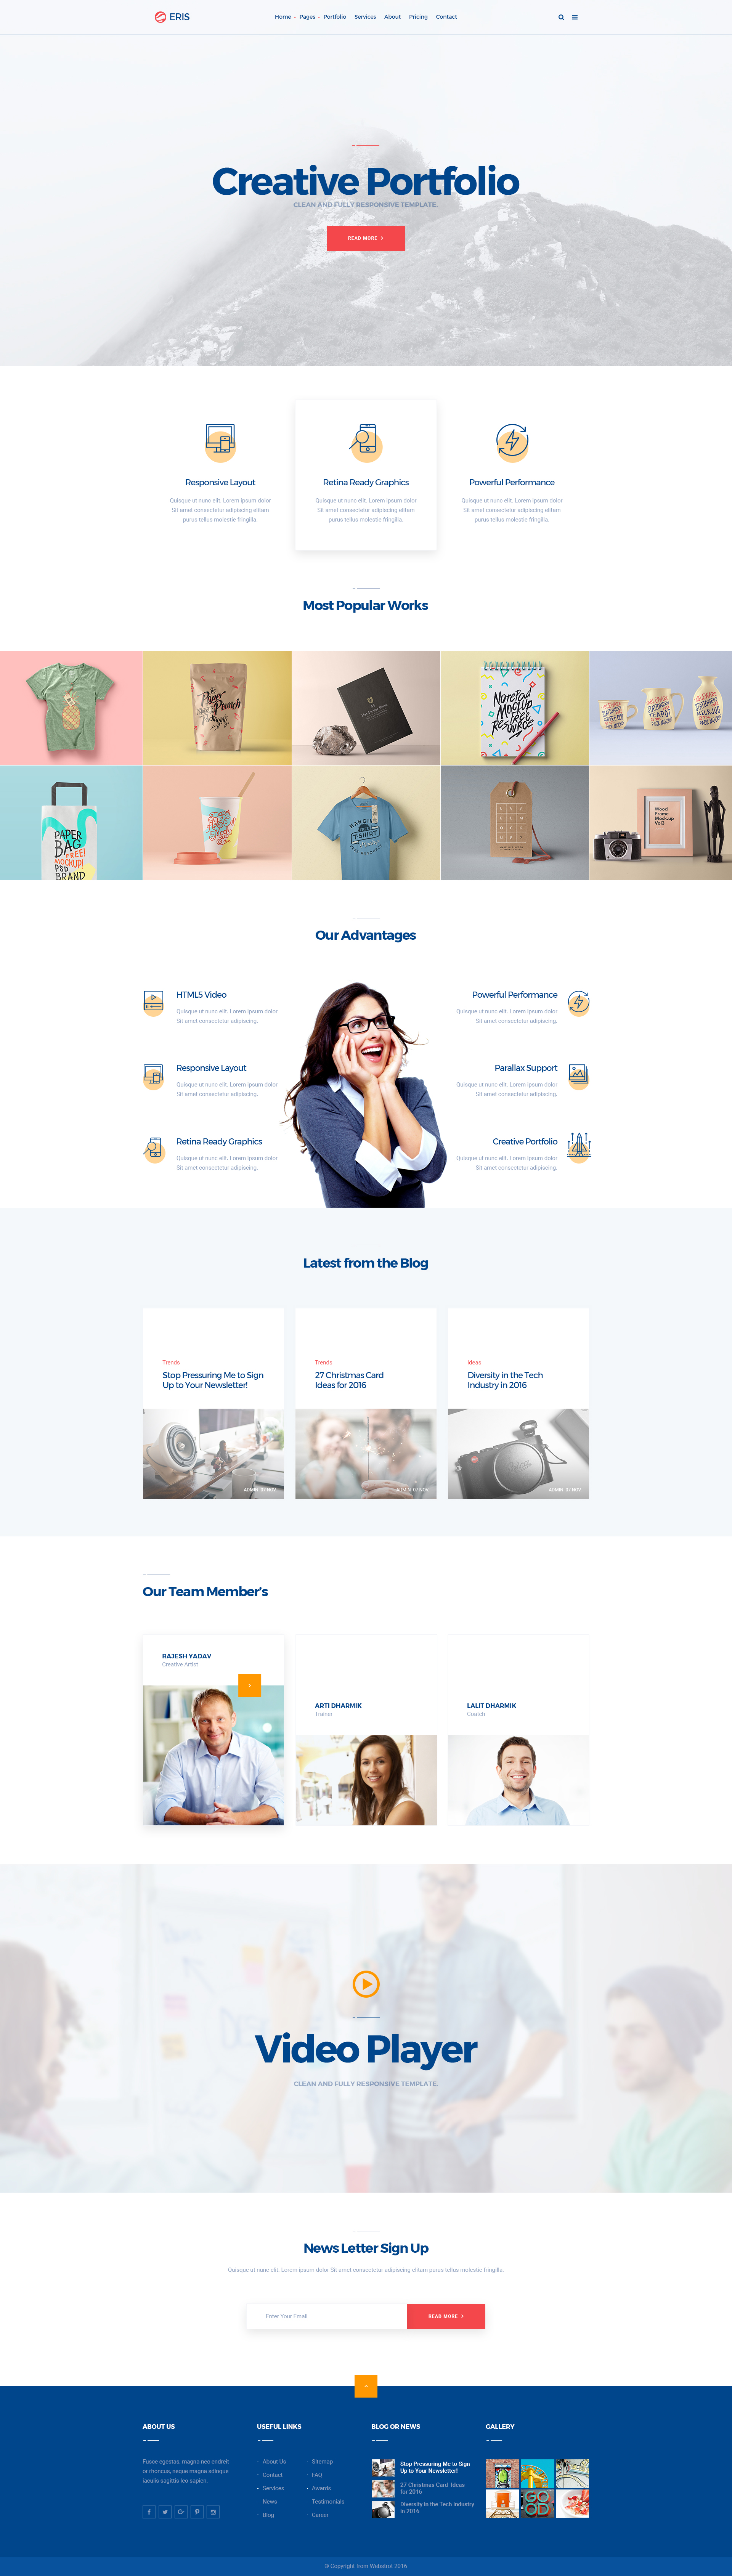 ERIS -Design Studio Marketing Agency PSD Template